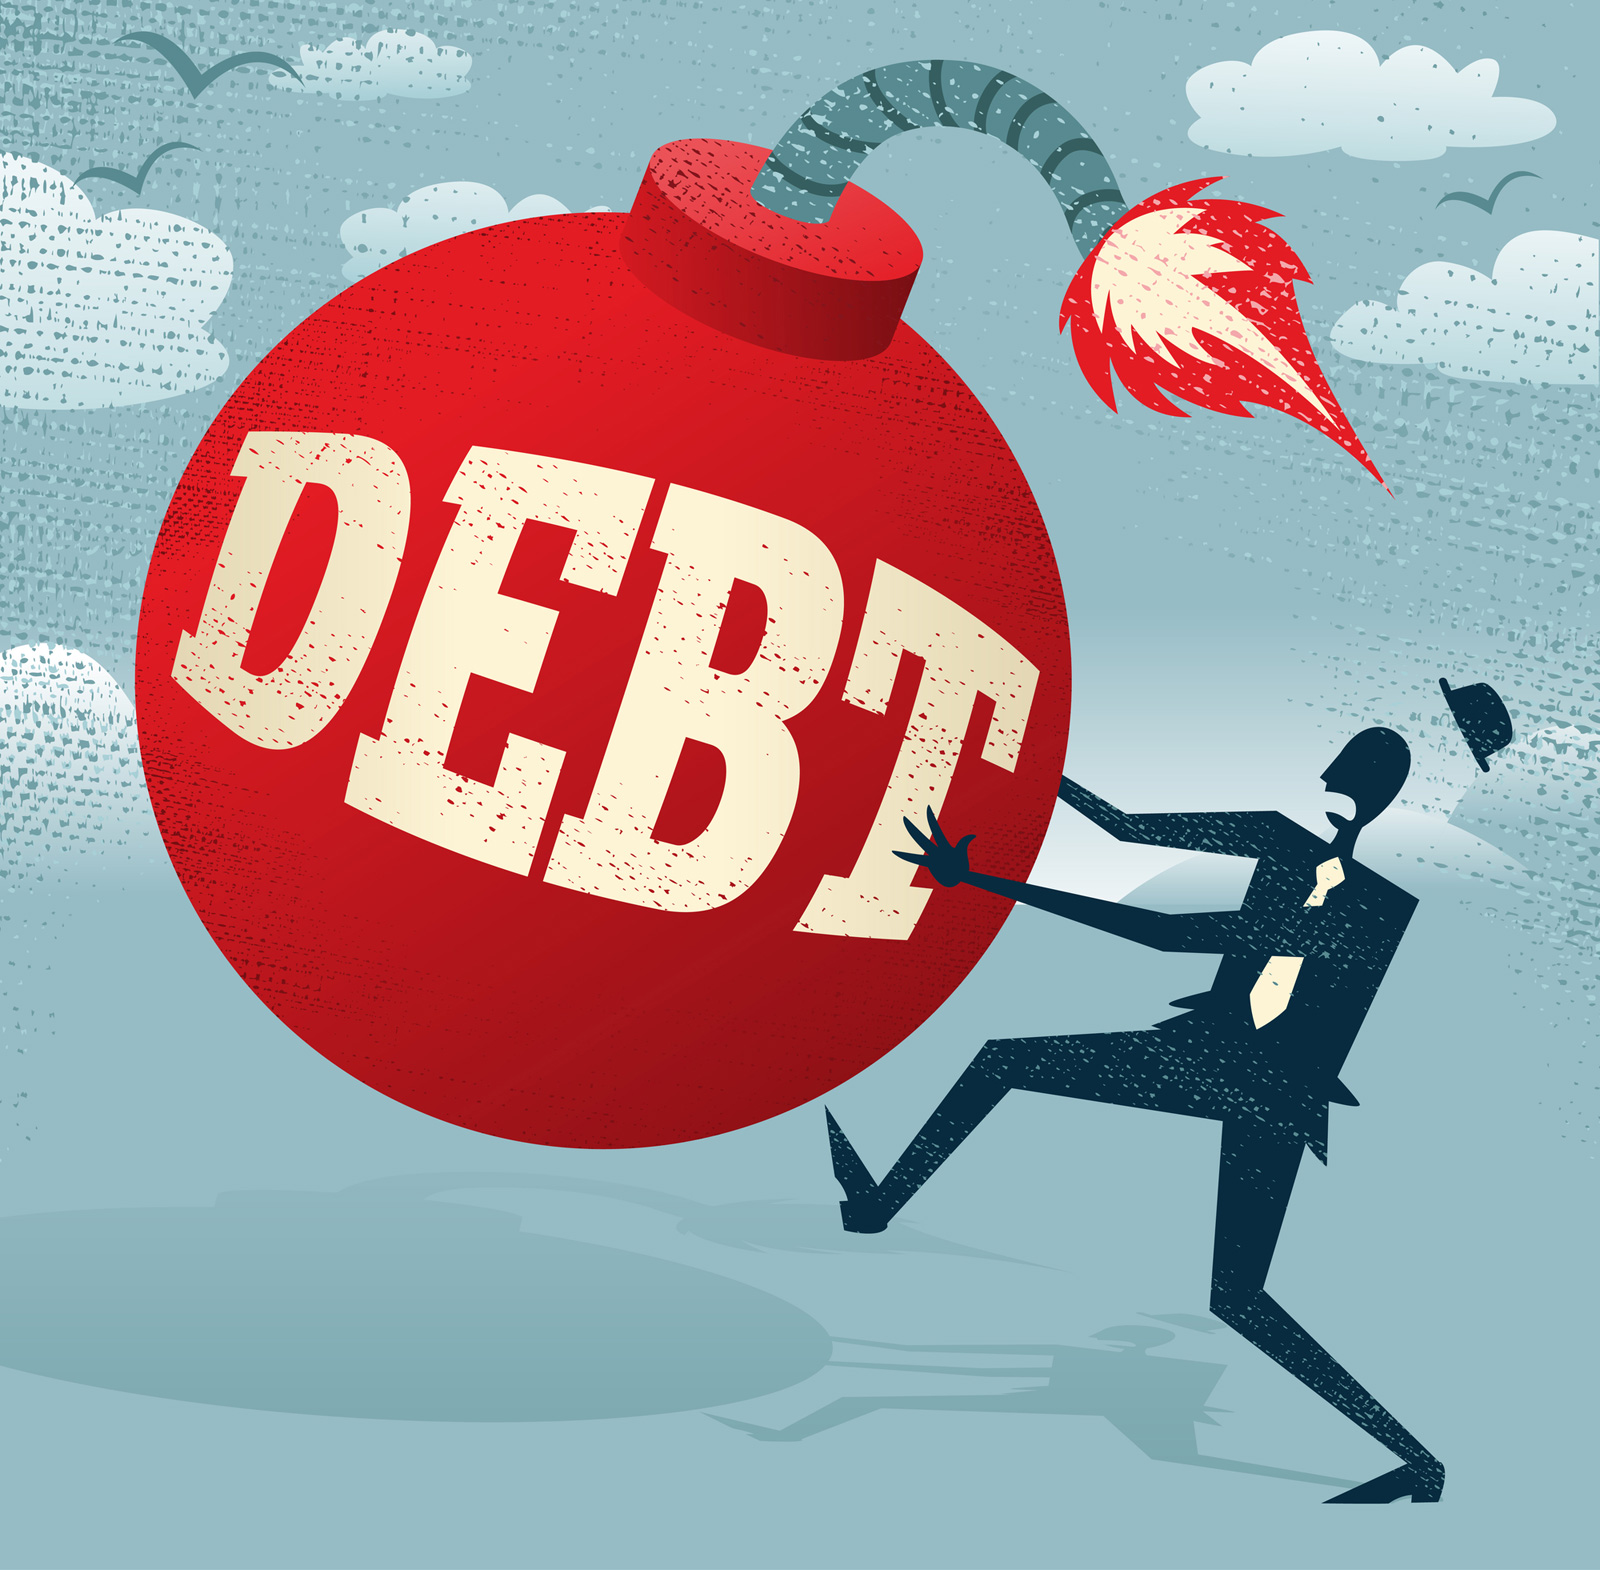 Debt is an emergency and Brian Barta Law can help!